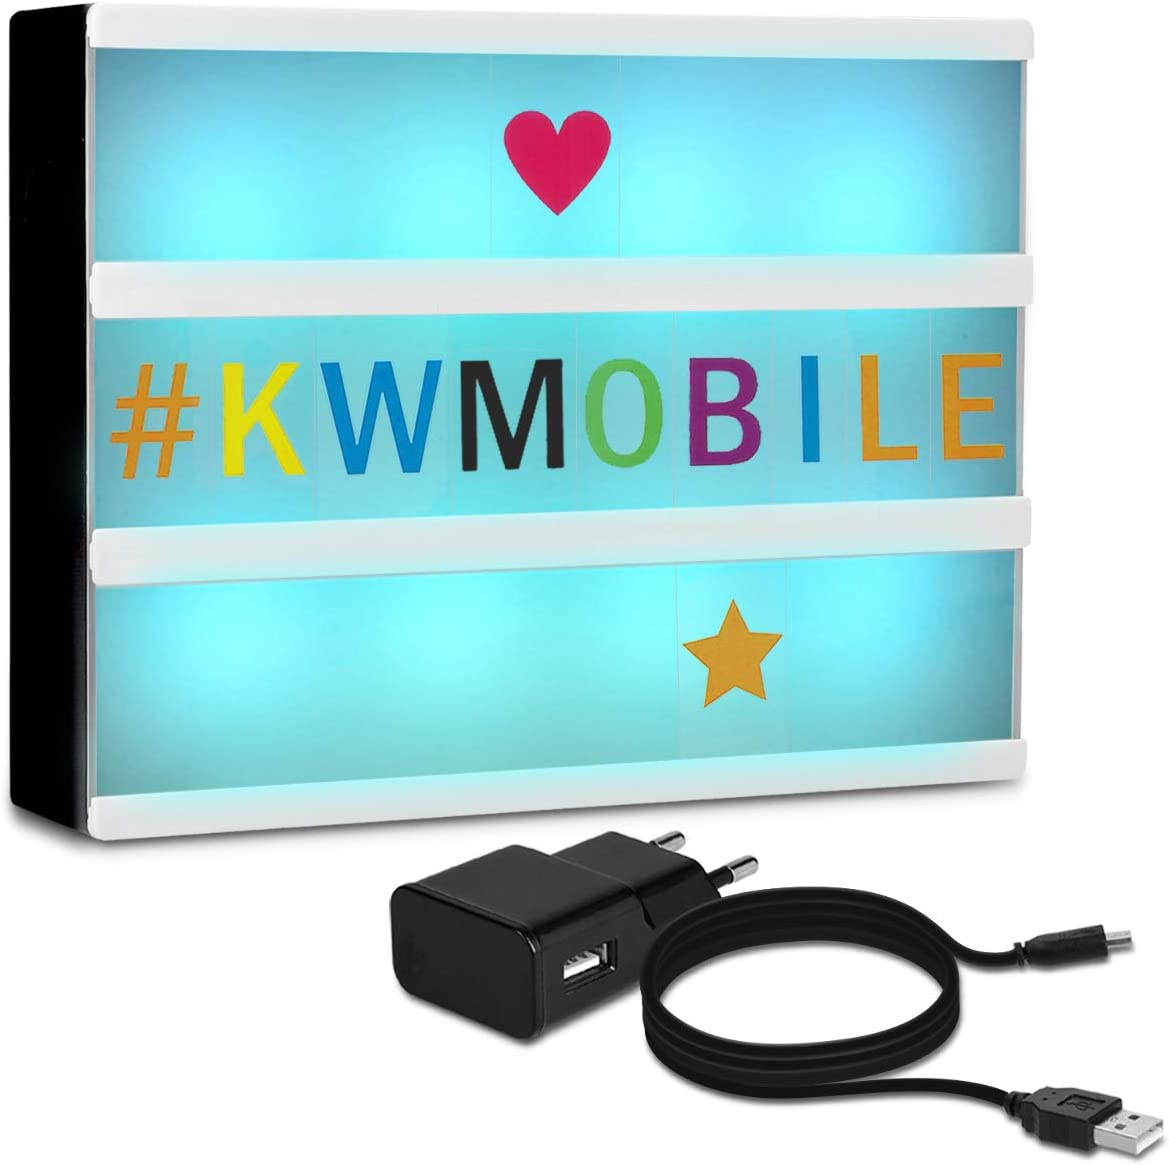 kwmobile caja de luz LED A4 - Light box con luces de 7 colores y ...